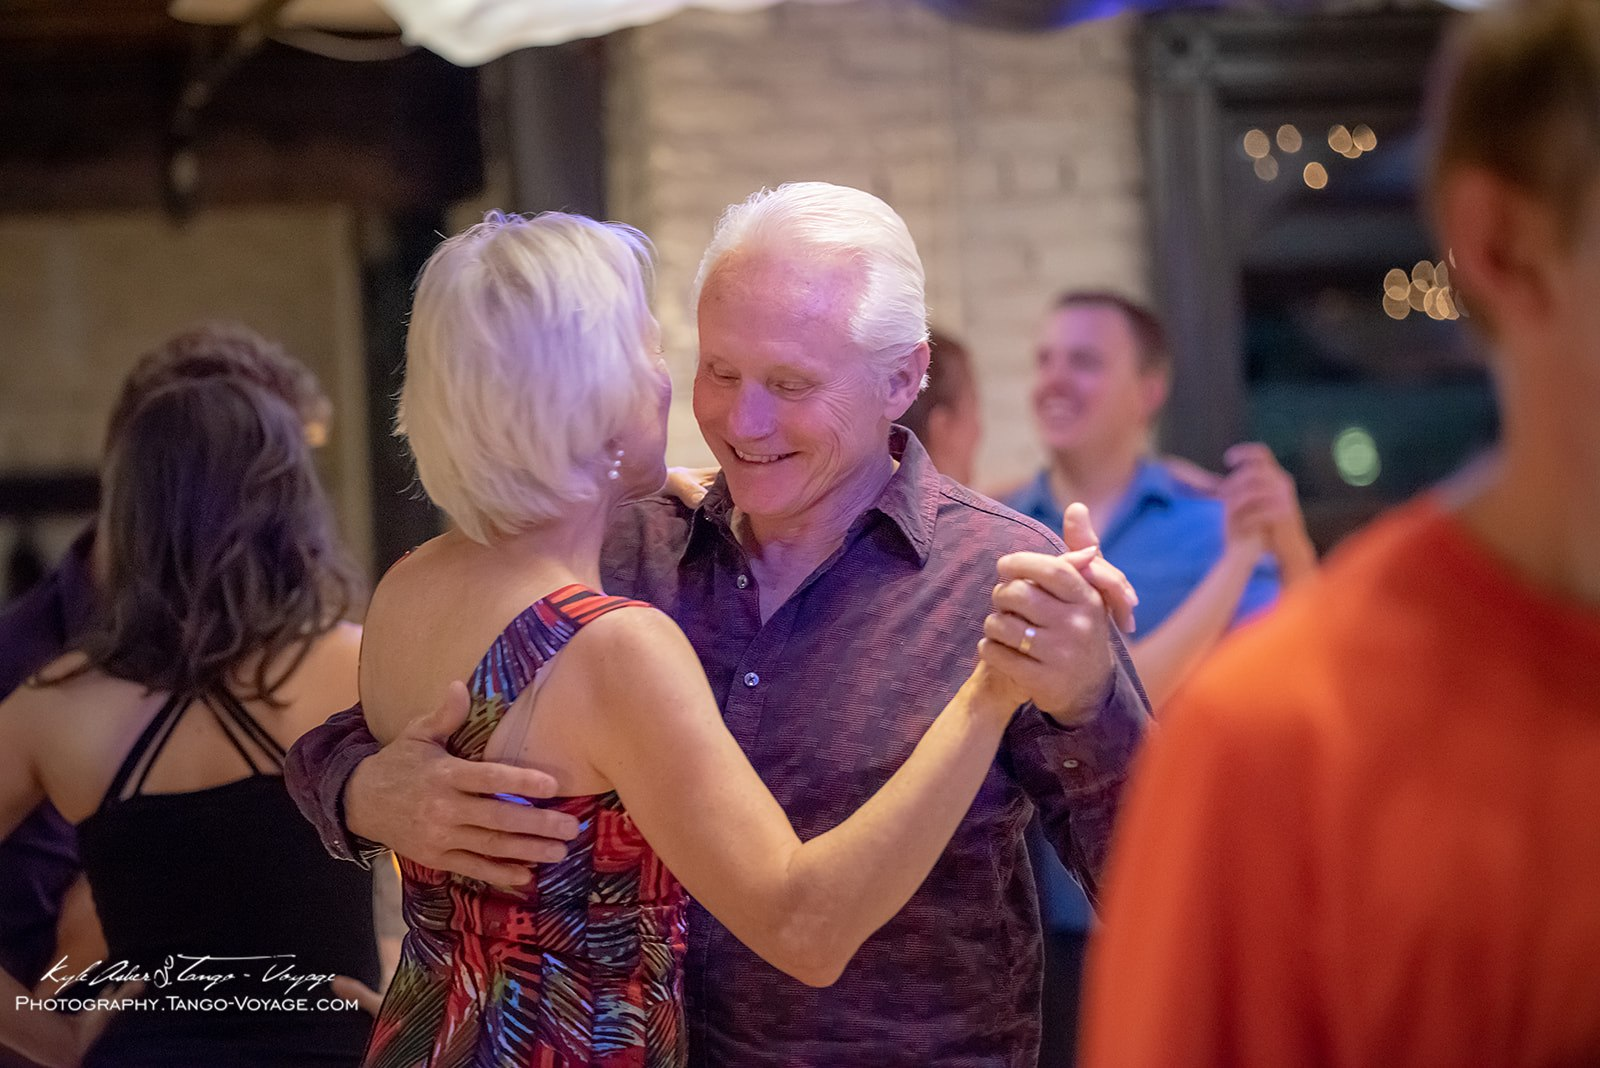 Photo credit to Kyle Asher, photographer & owner of  Tango-Voyage.com .